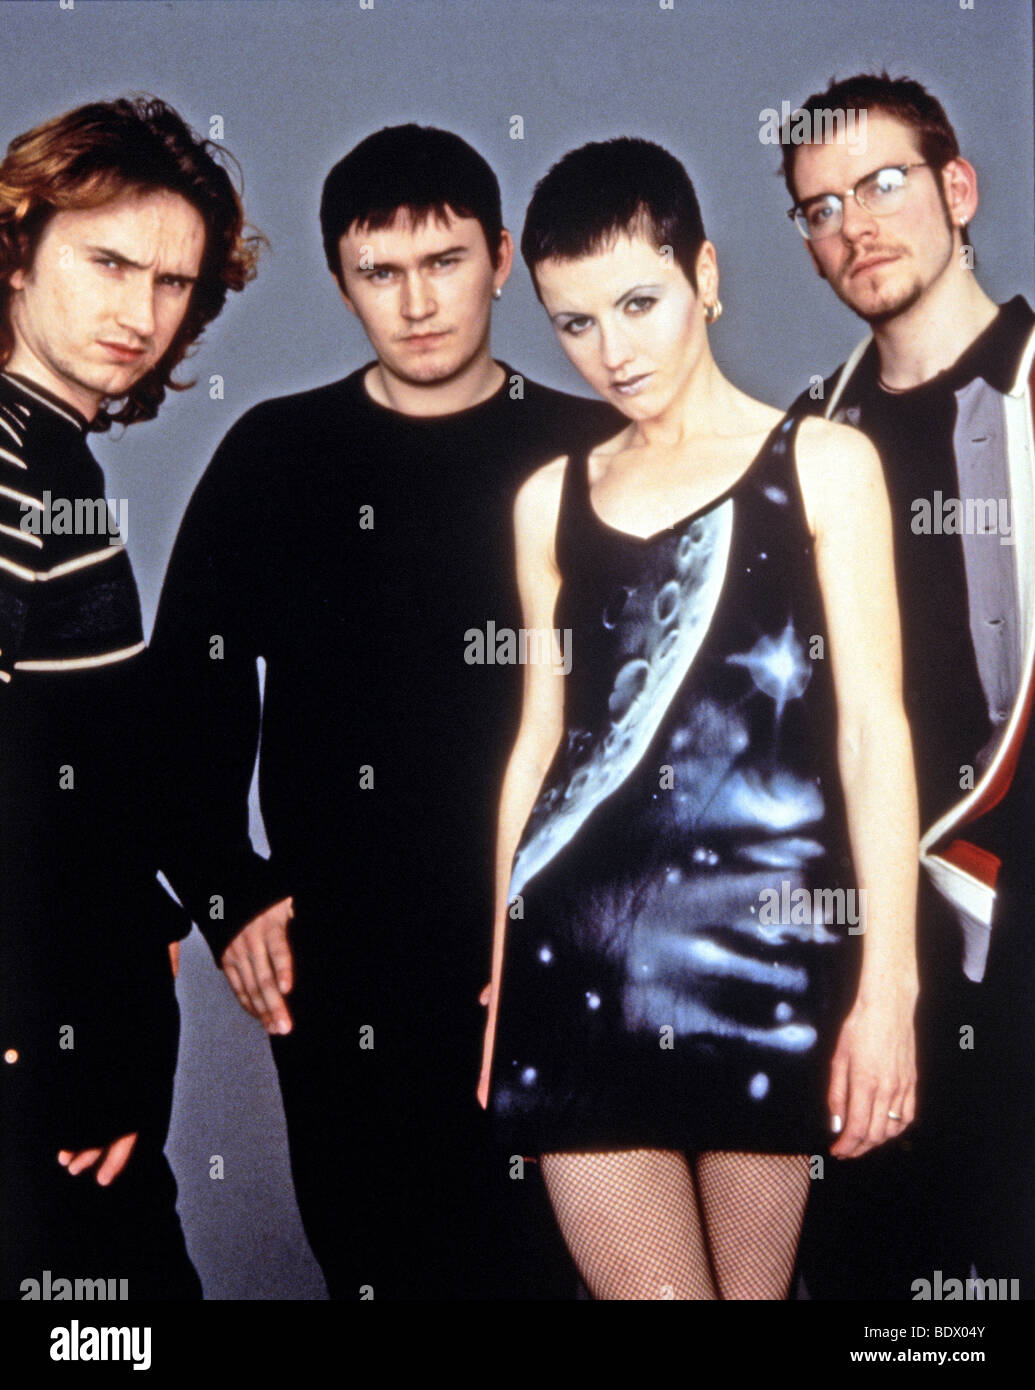 HOLA SOY EXTRATERRESTRE, ME ENSEÑAS ? The-cranberries-promotional-photo-of-irish-rock-group-with-dolores-BDX04Y